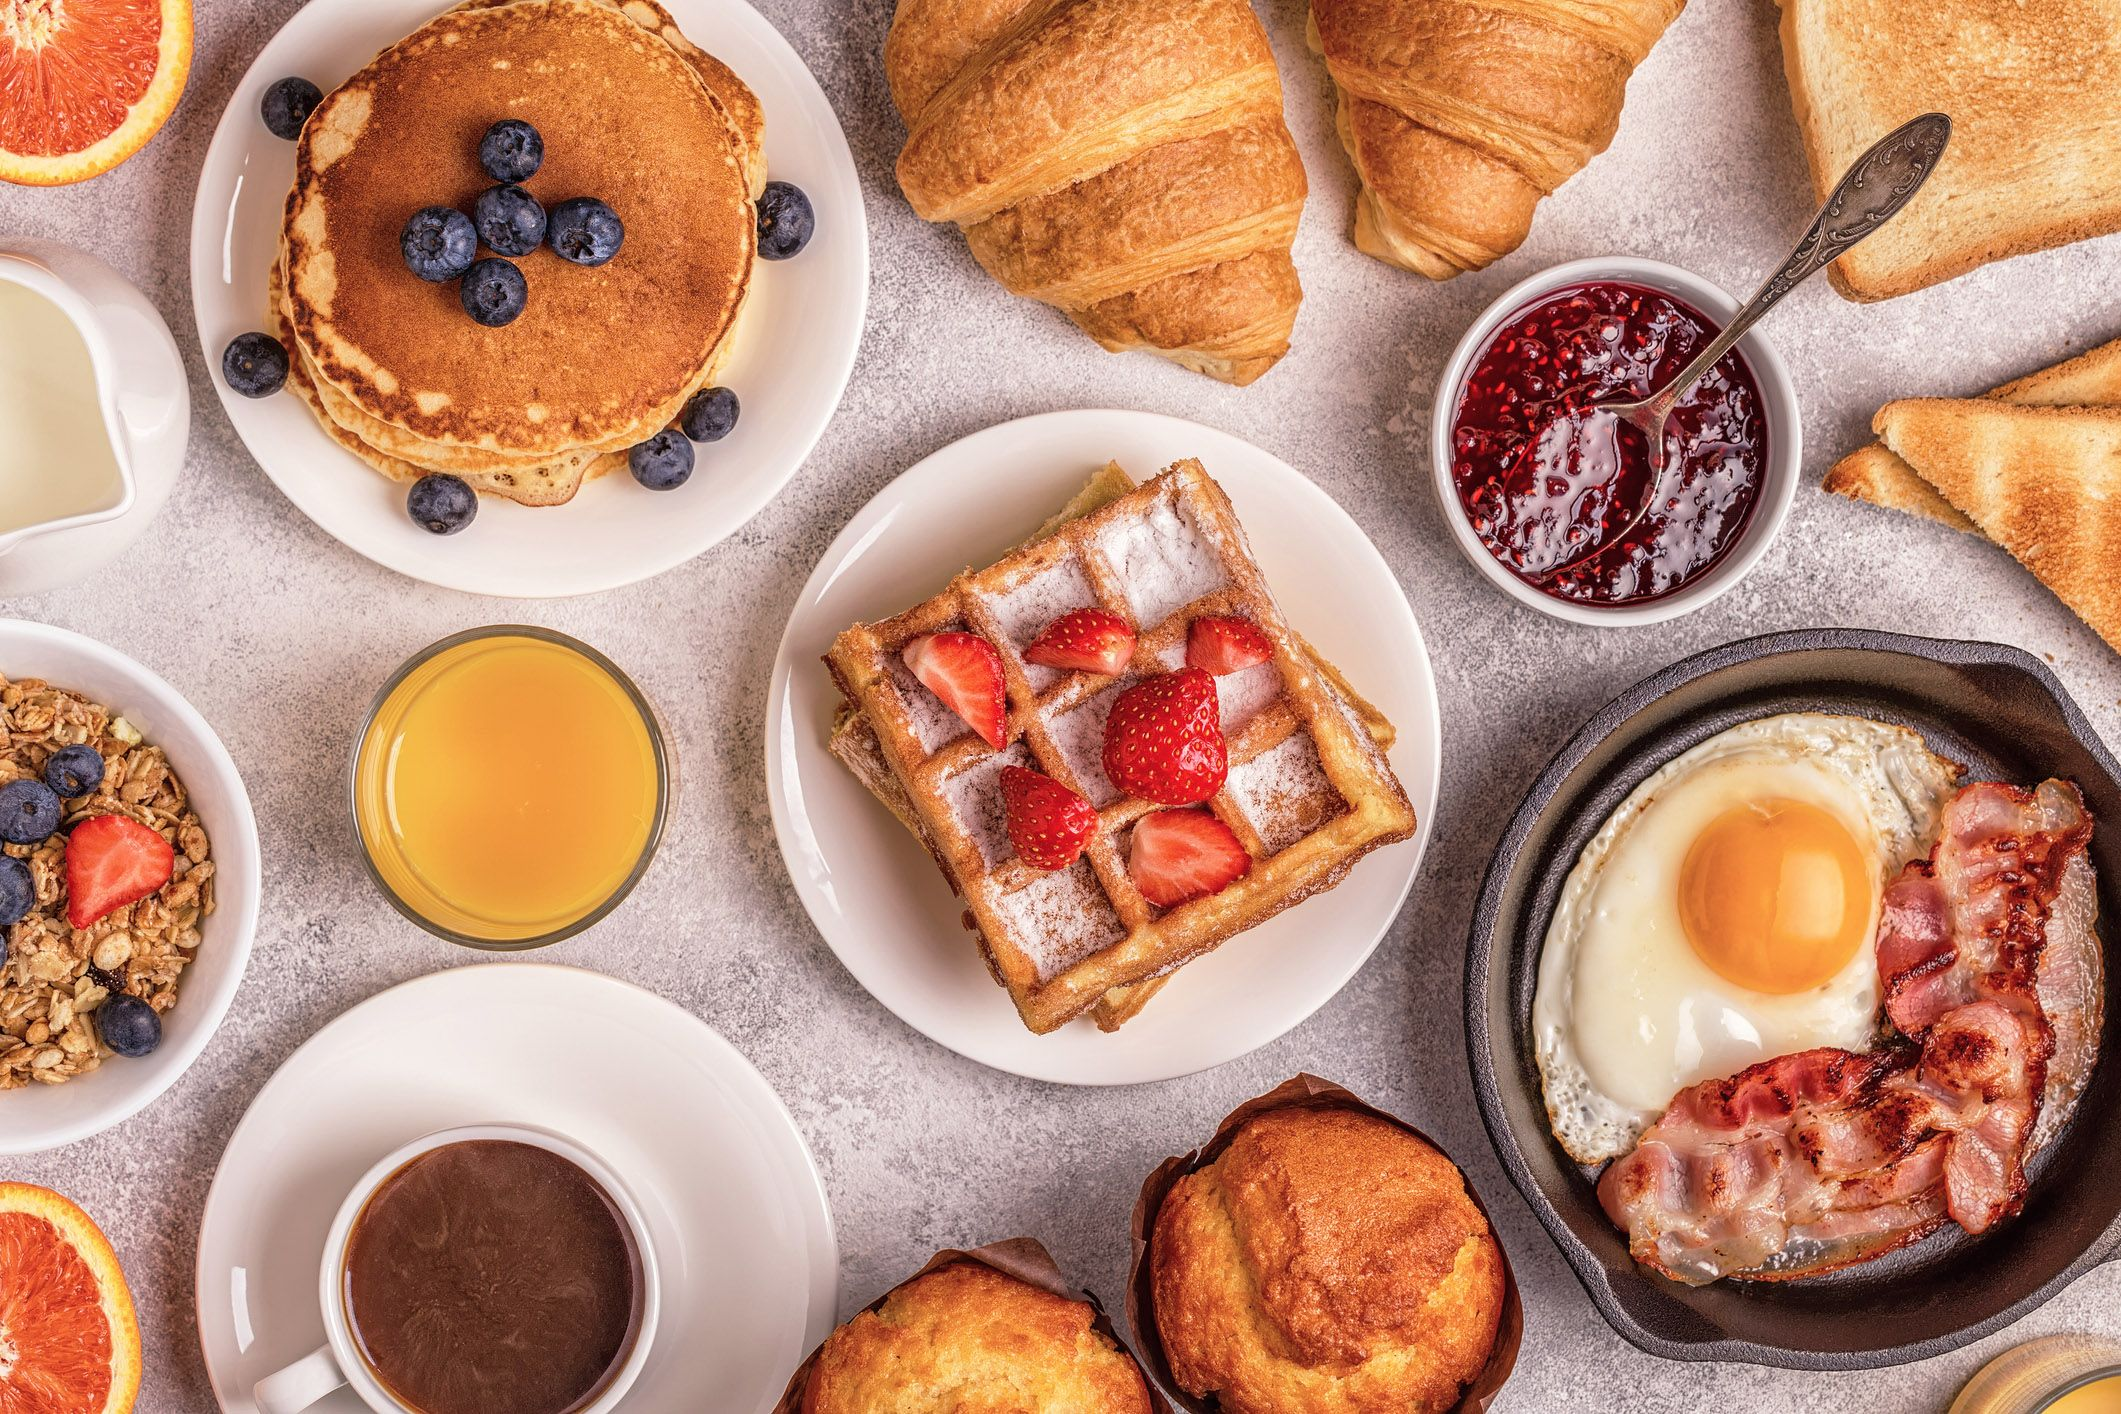 Should I Eat Breakfast? Why Skipping The Meal Could Help